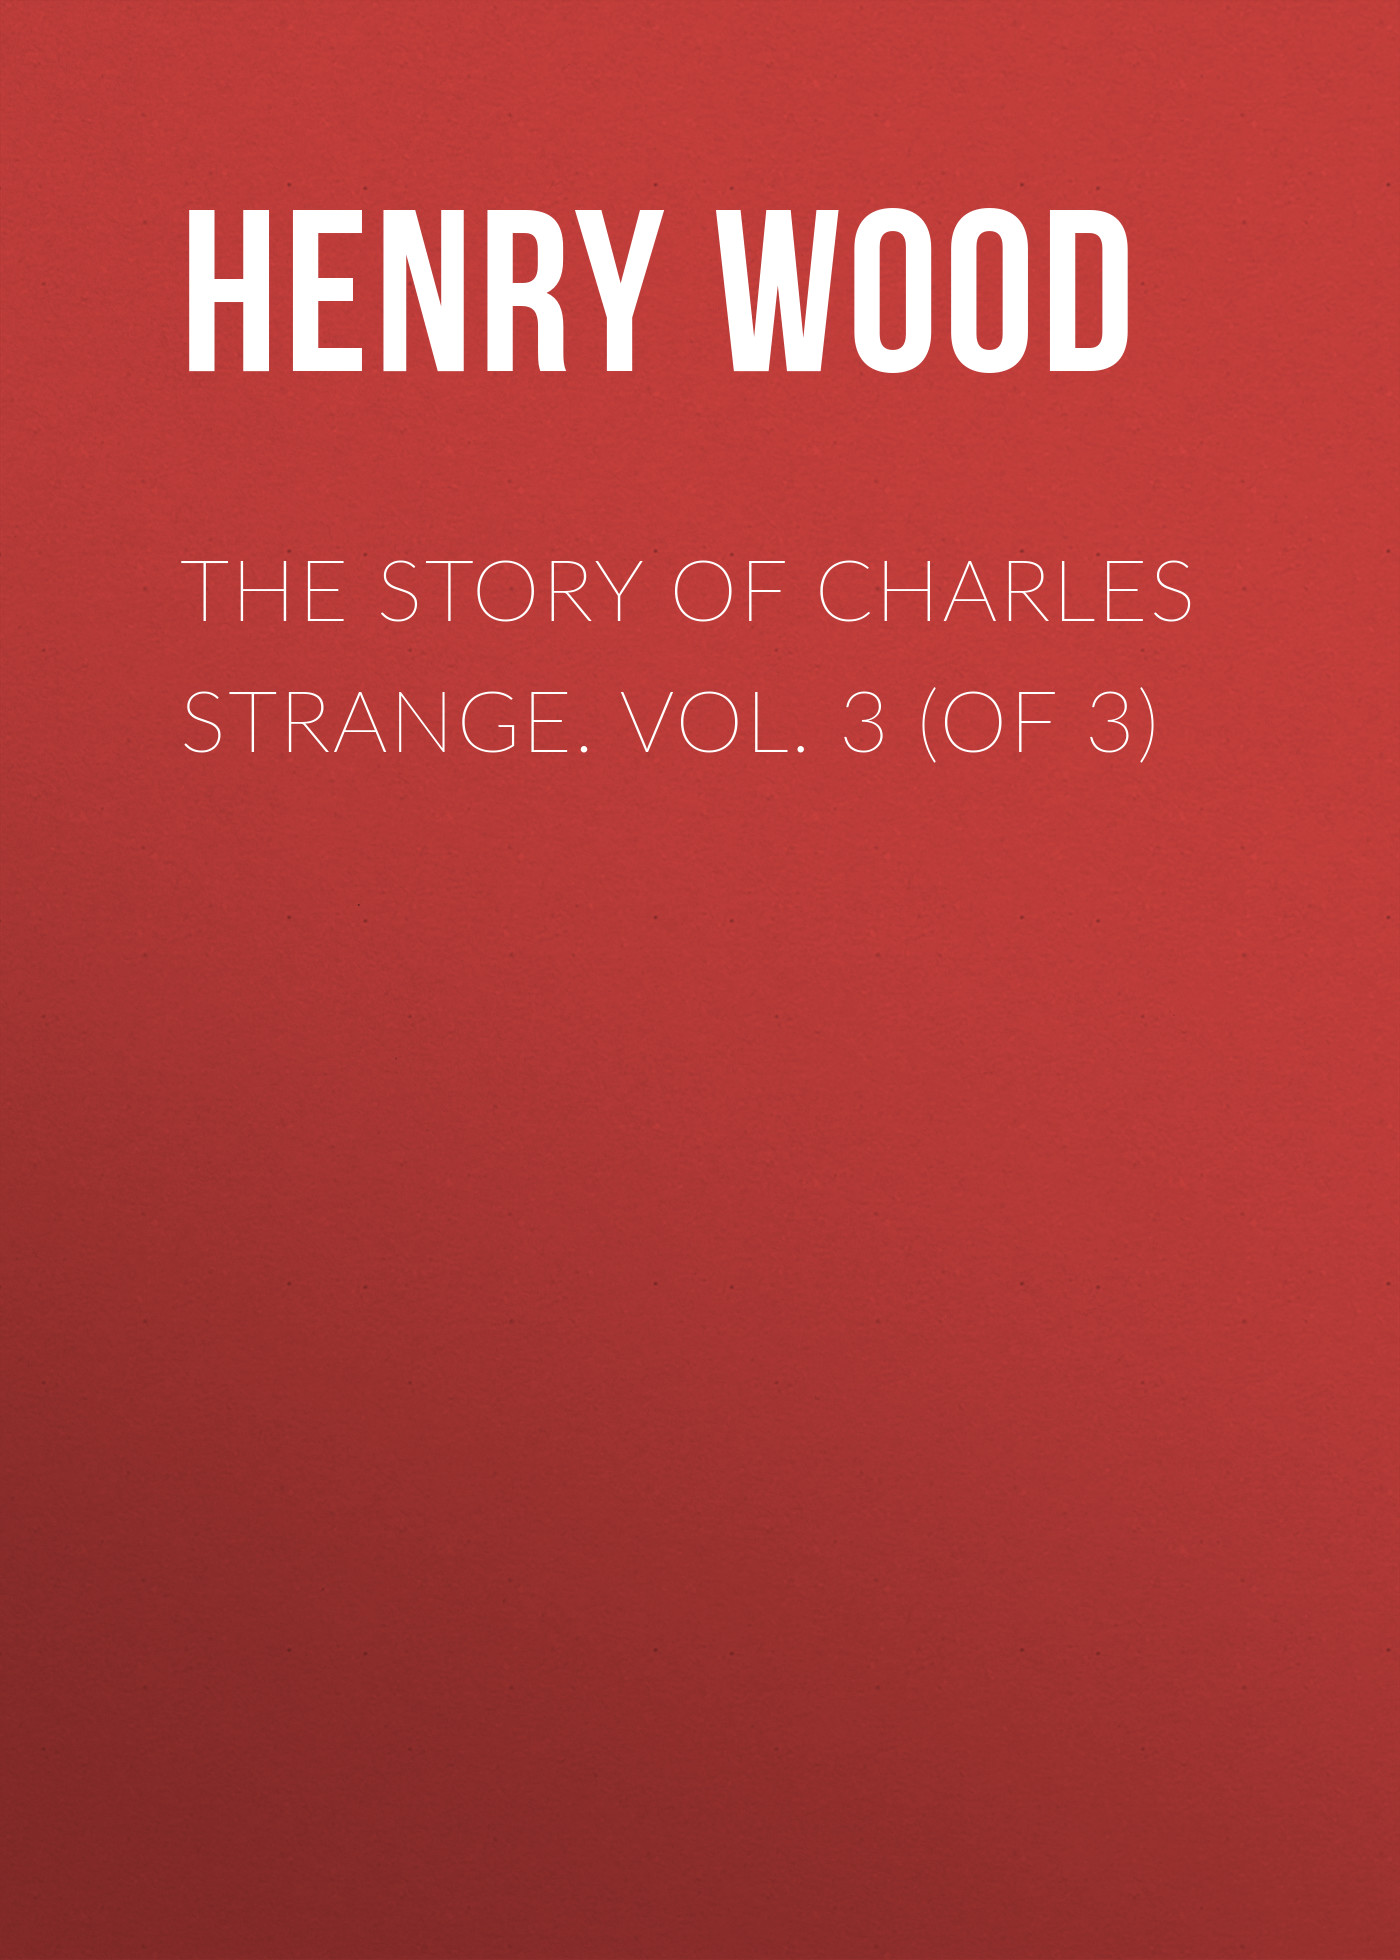 лучшая цена Henry Wood The Story of Charles Strange. Vol. 3 (of 3)